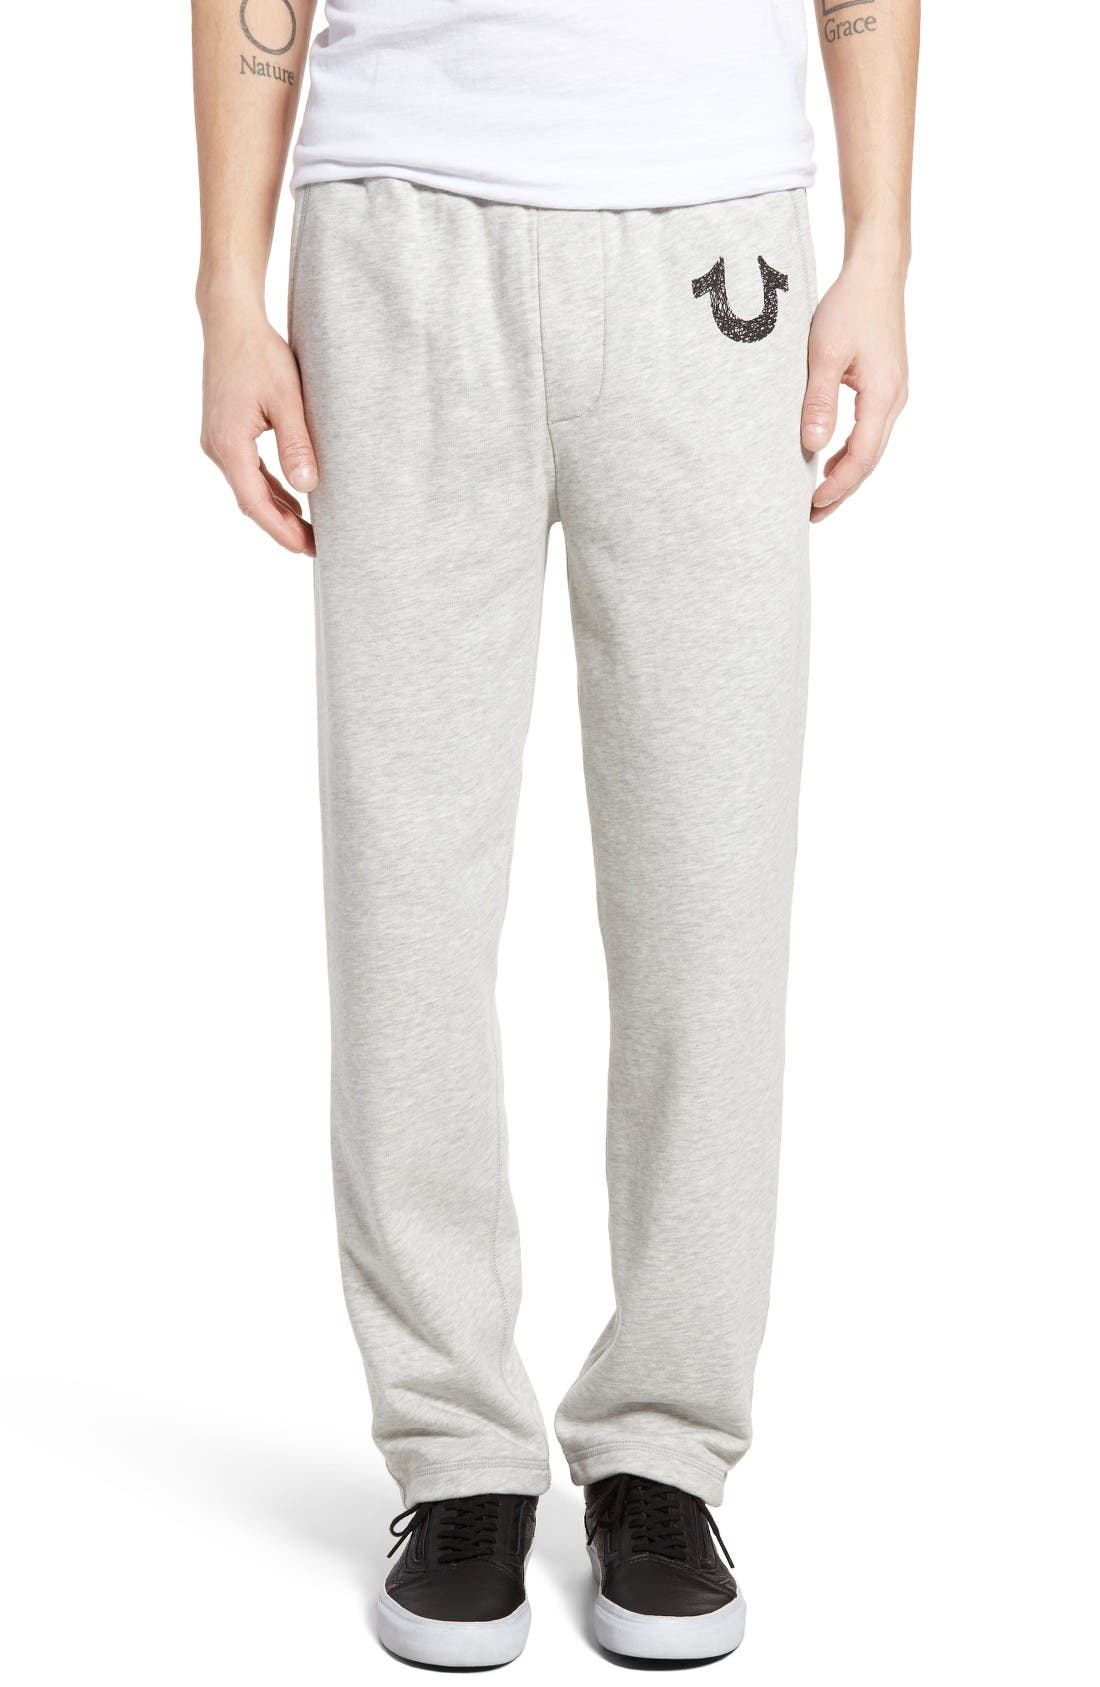 Open Leg Sweatpants,                             Main thumbnail 1, color,                             Heather Grey